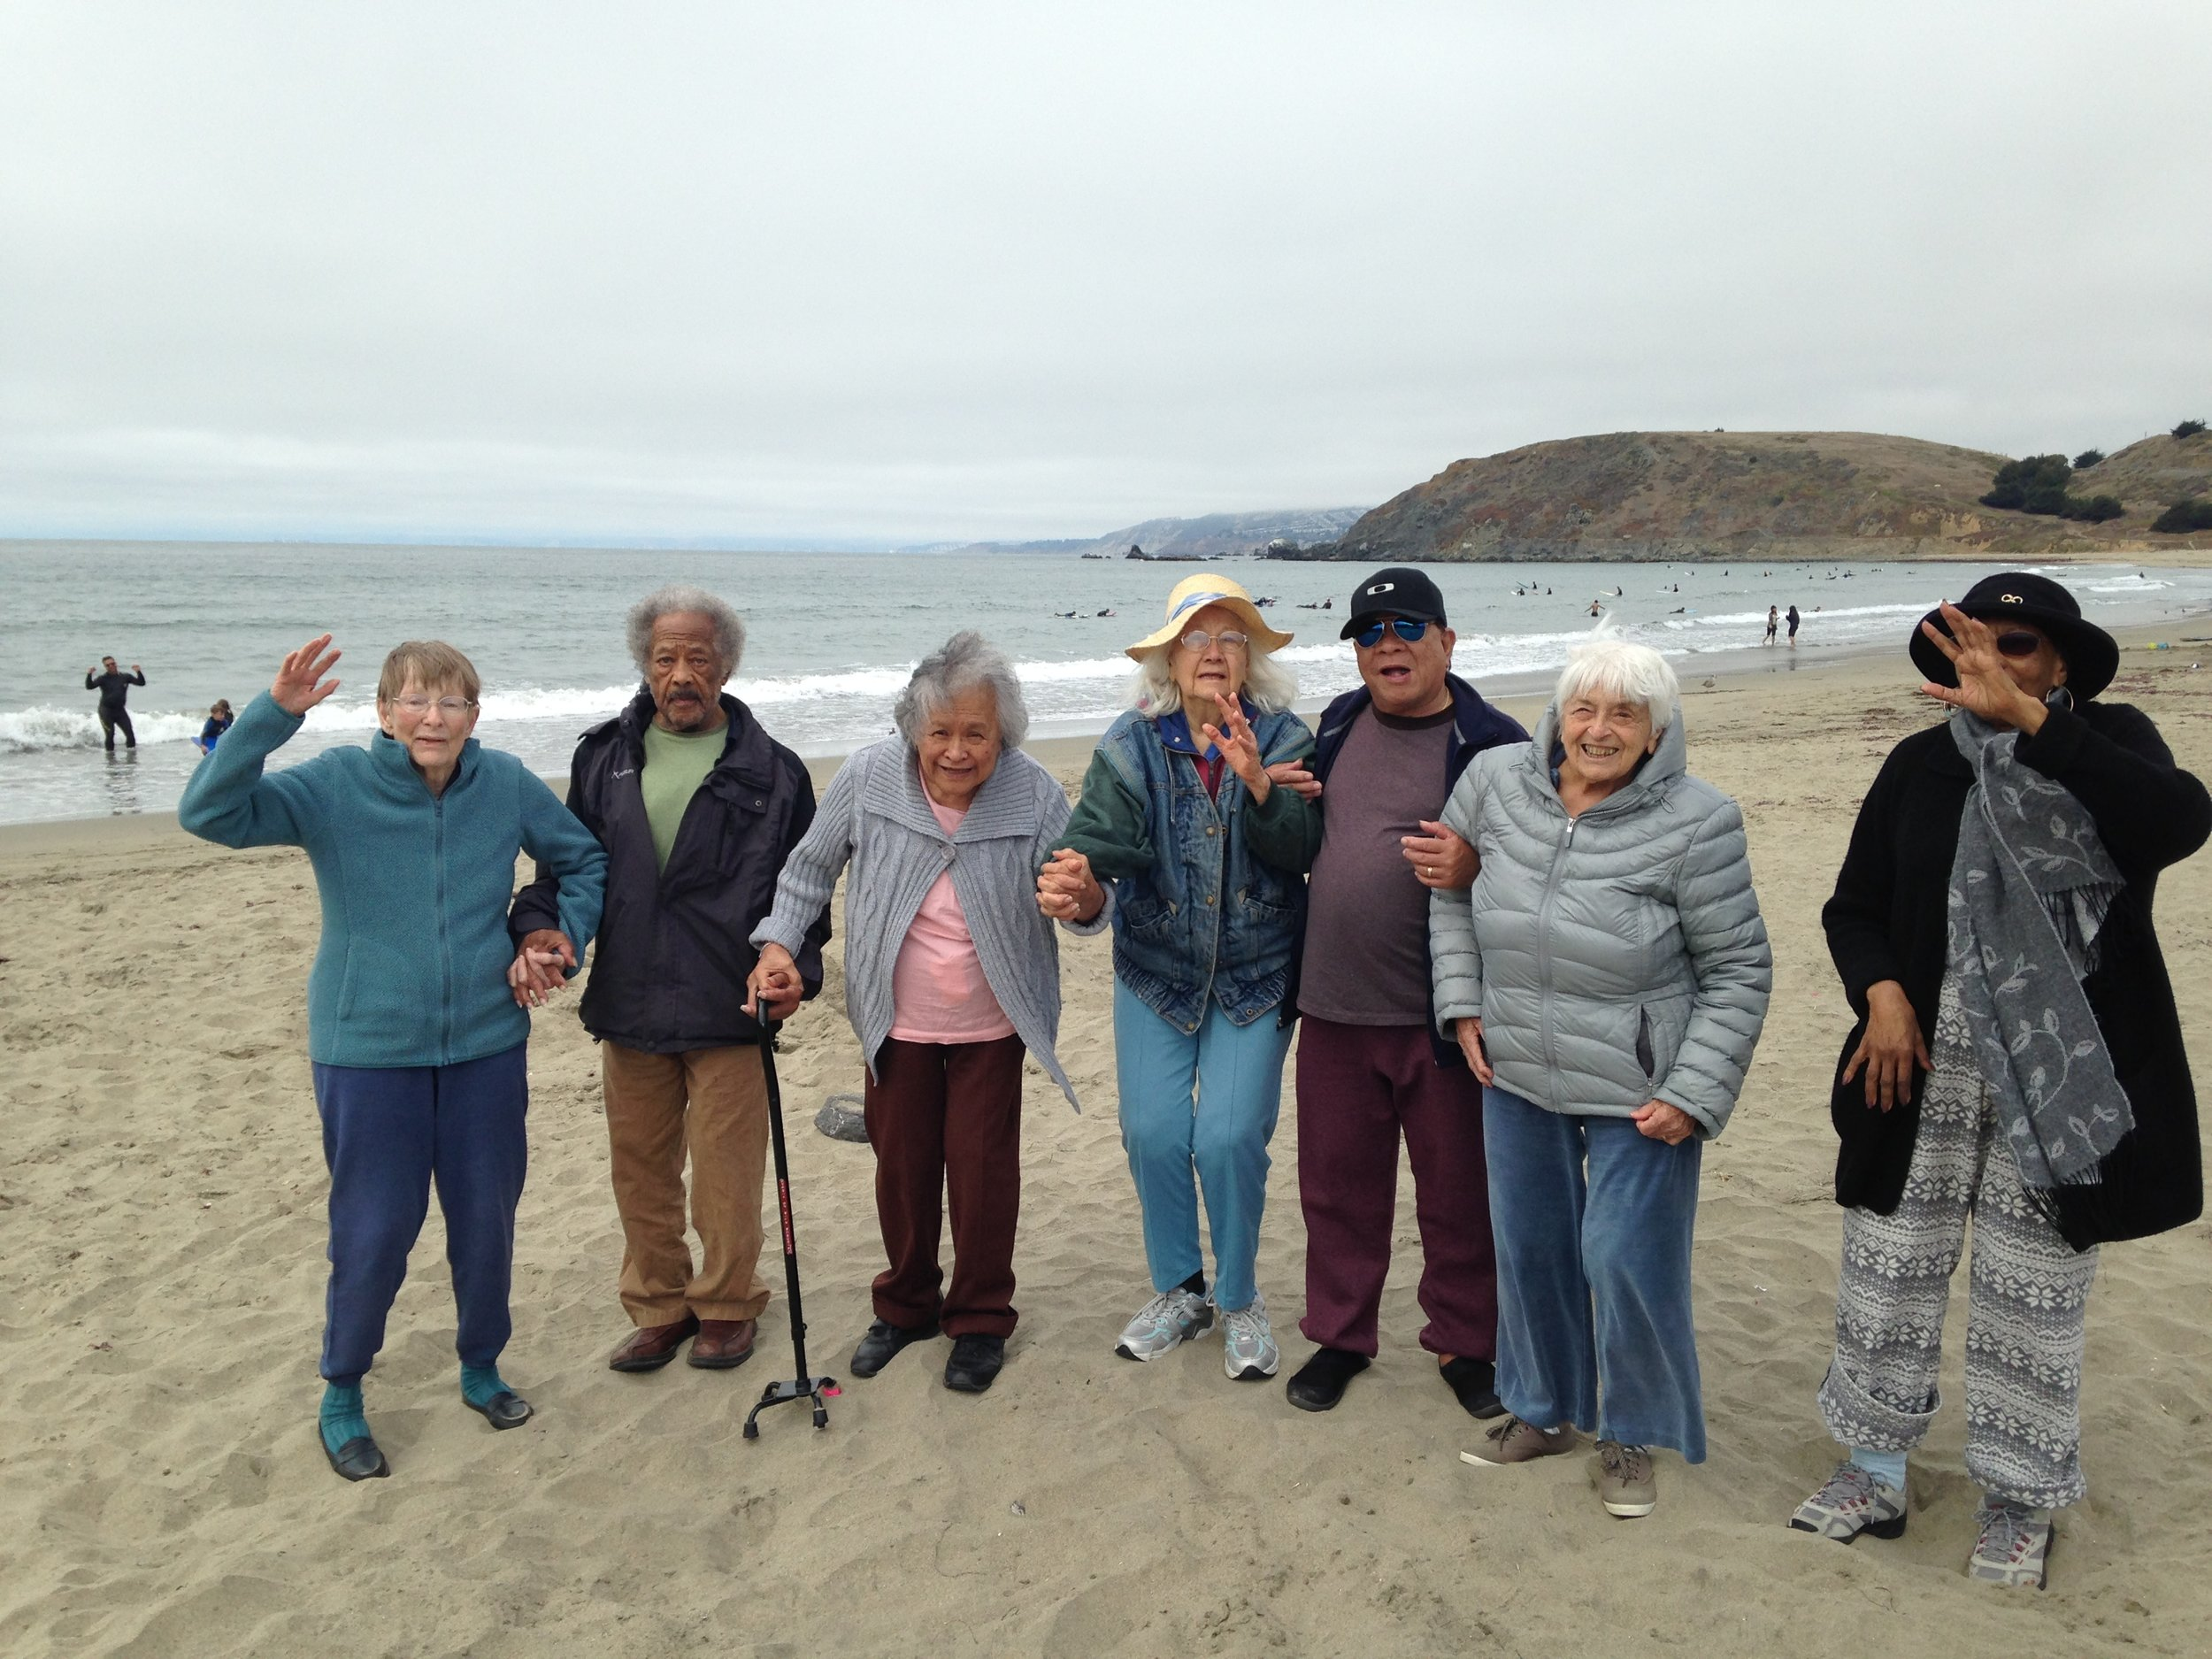 Sun valley Chateau Pacifica elderly and senior care beach day